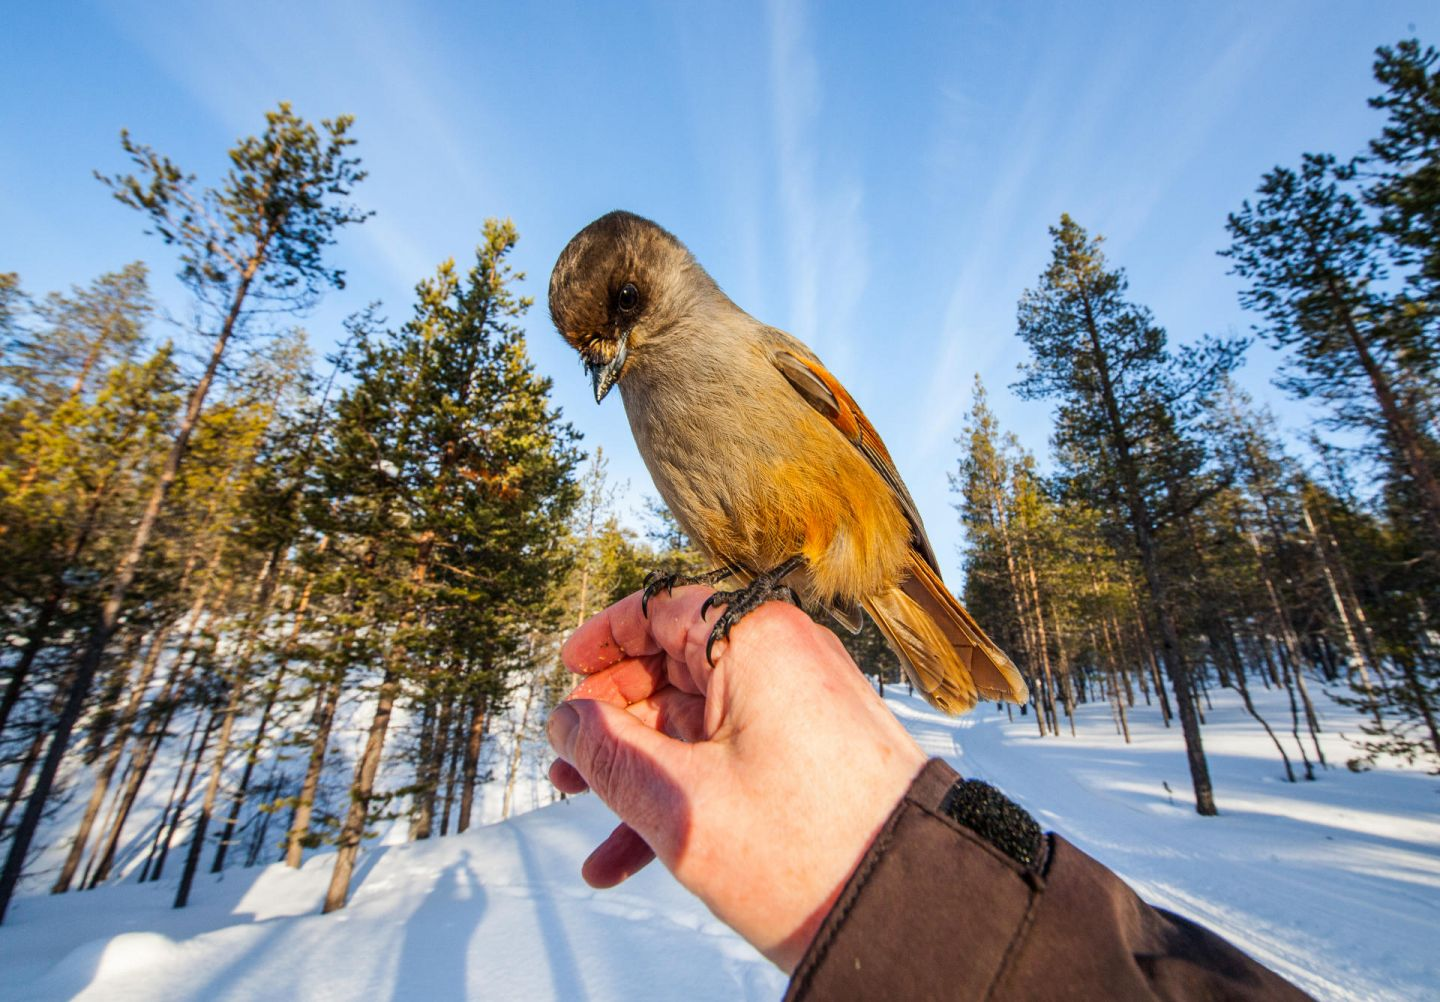 Siberian jays, part of the Arctic wildlife you'll find in Finnish Lapland